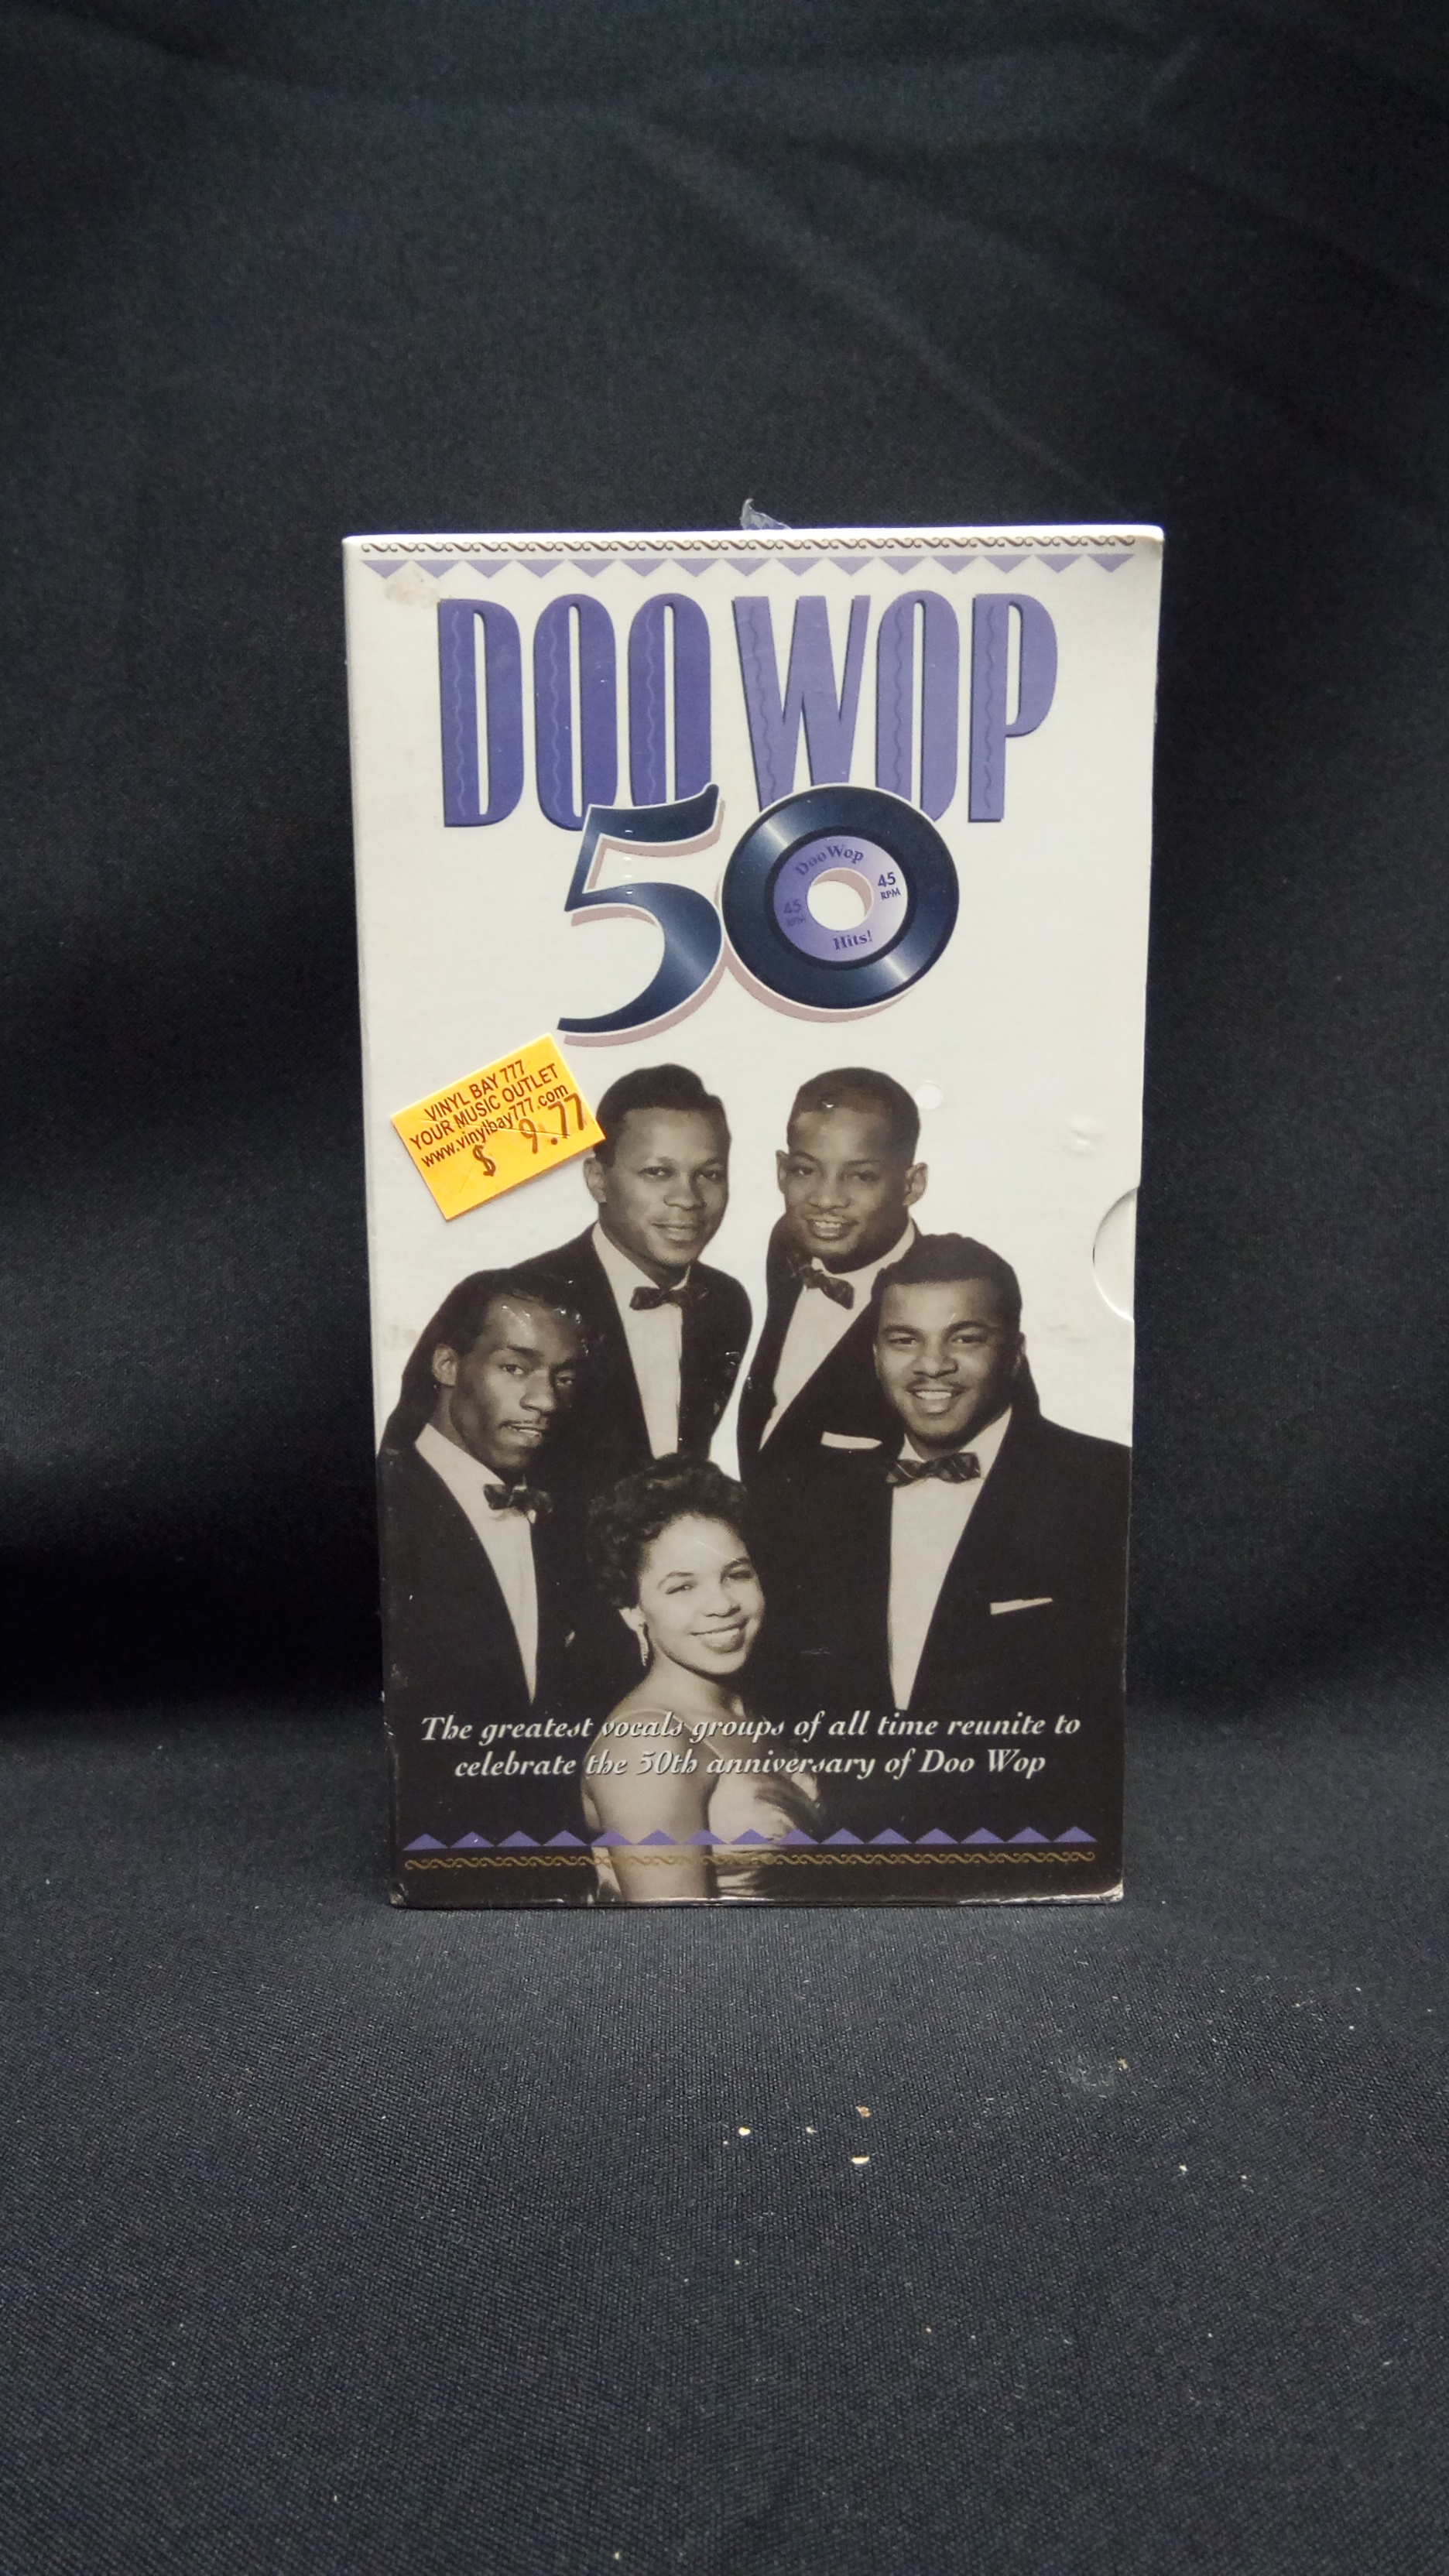 sealed 2 vhs set various artists doo wop 50 1999 rhino home video vinylbay777. Black Bedroom Furniture Sets. Home Design Ideas